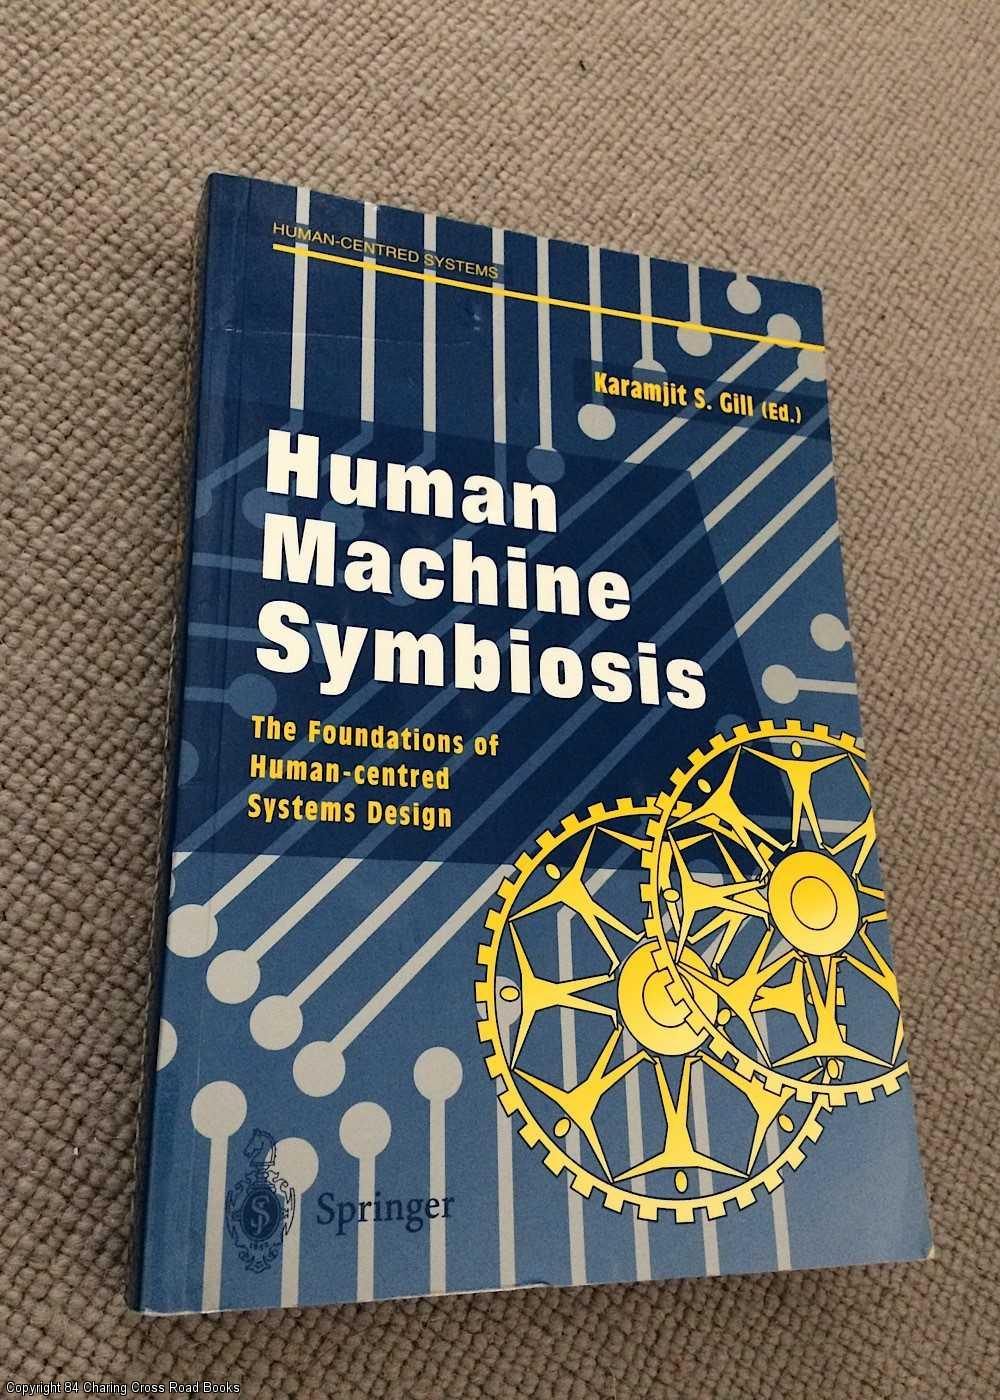 GILL, KARAMJIT S. - Human Machine Symbiosis: The Foundations of Human-Centred Systems Design